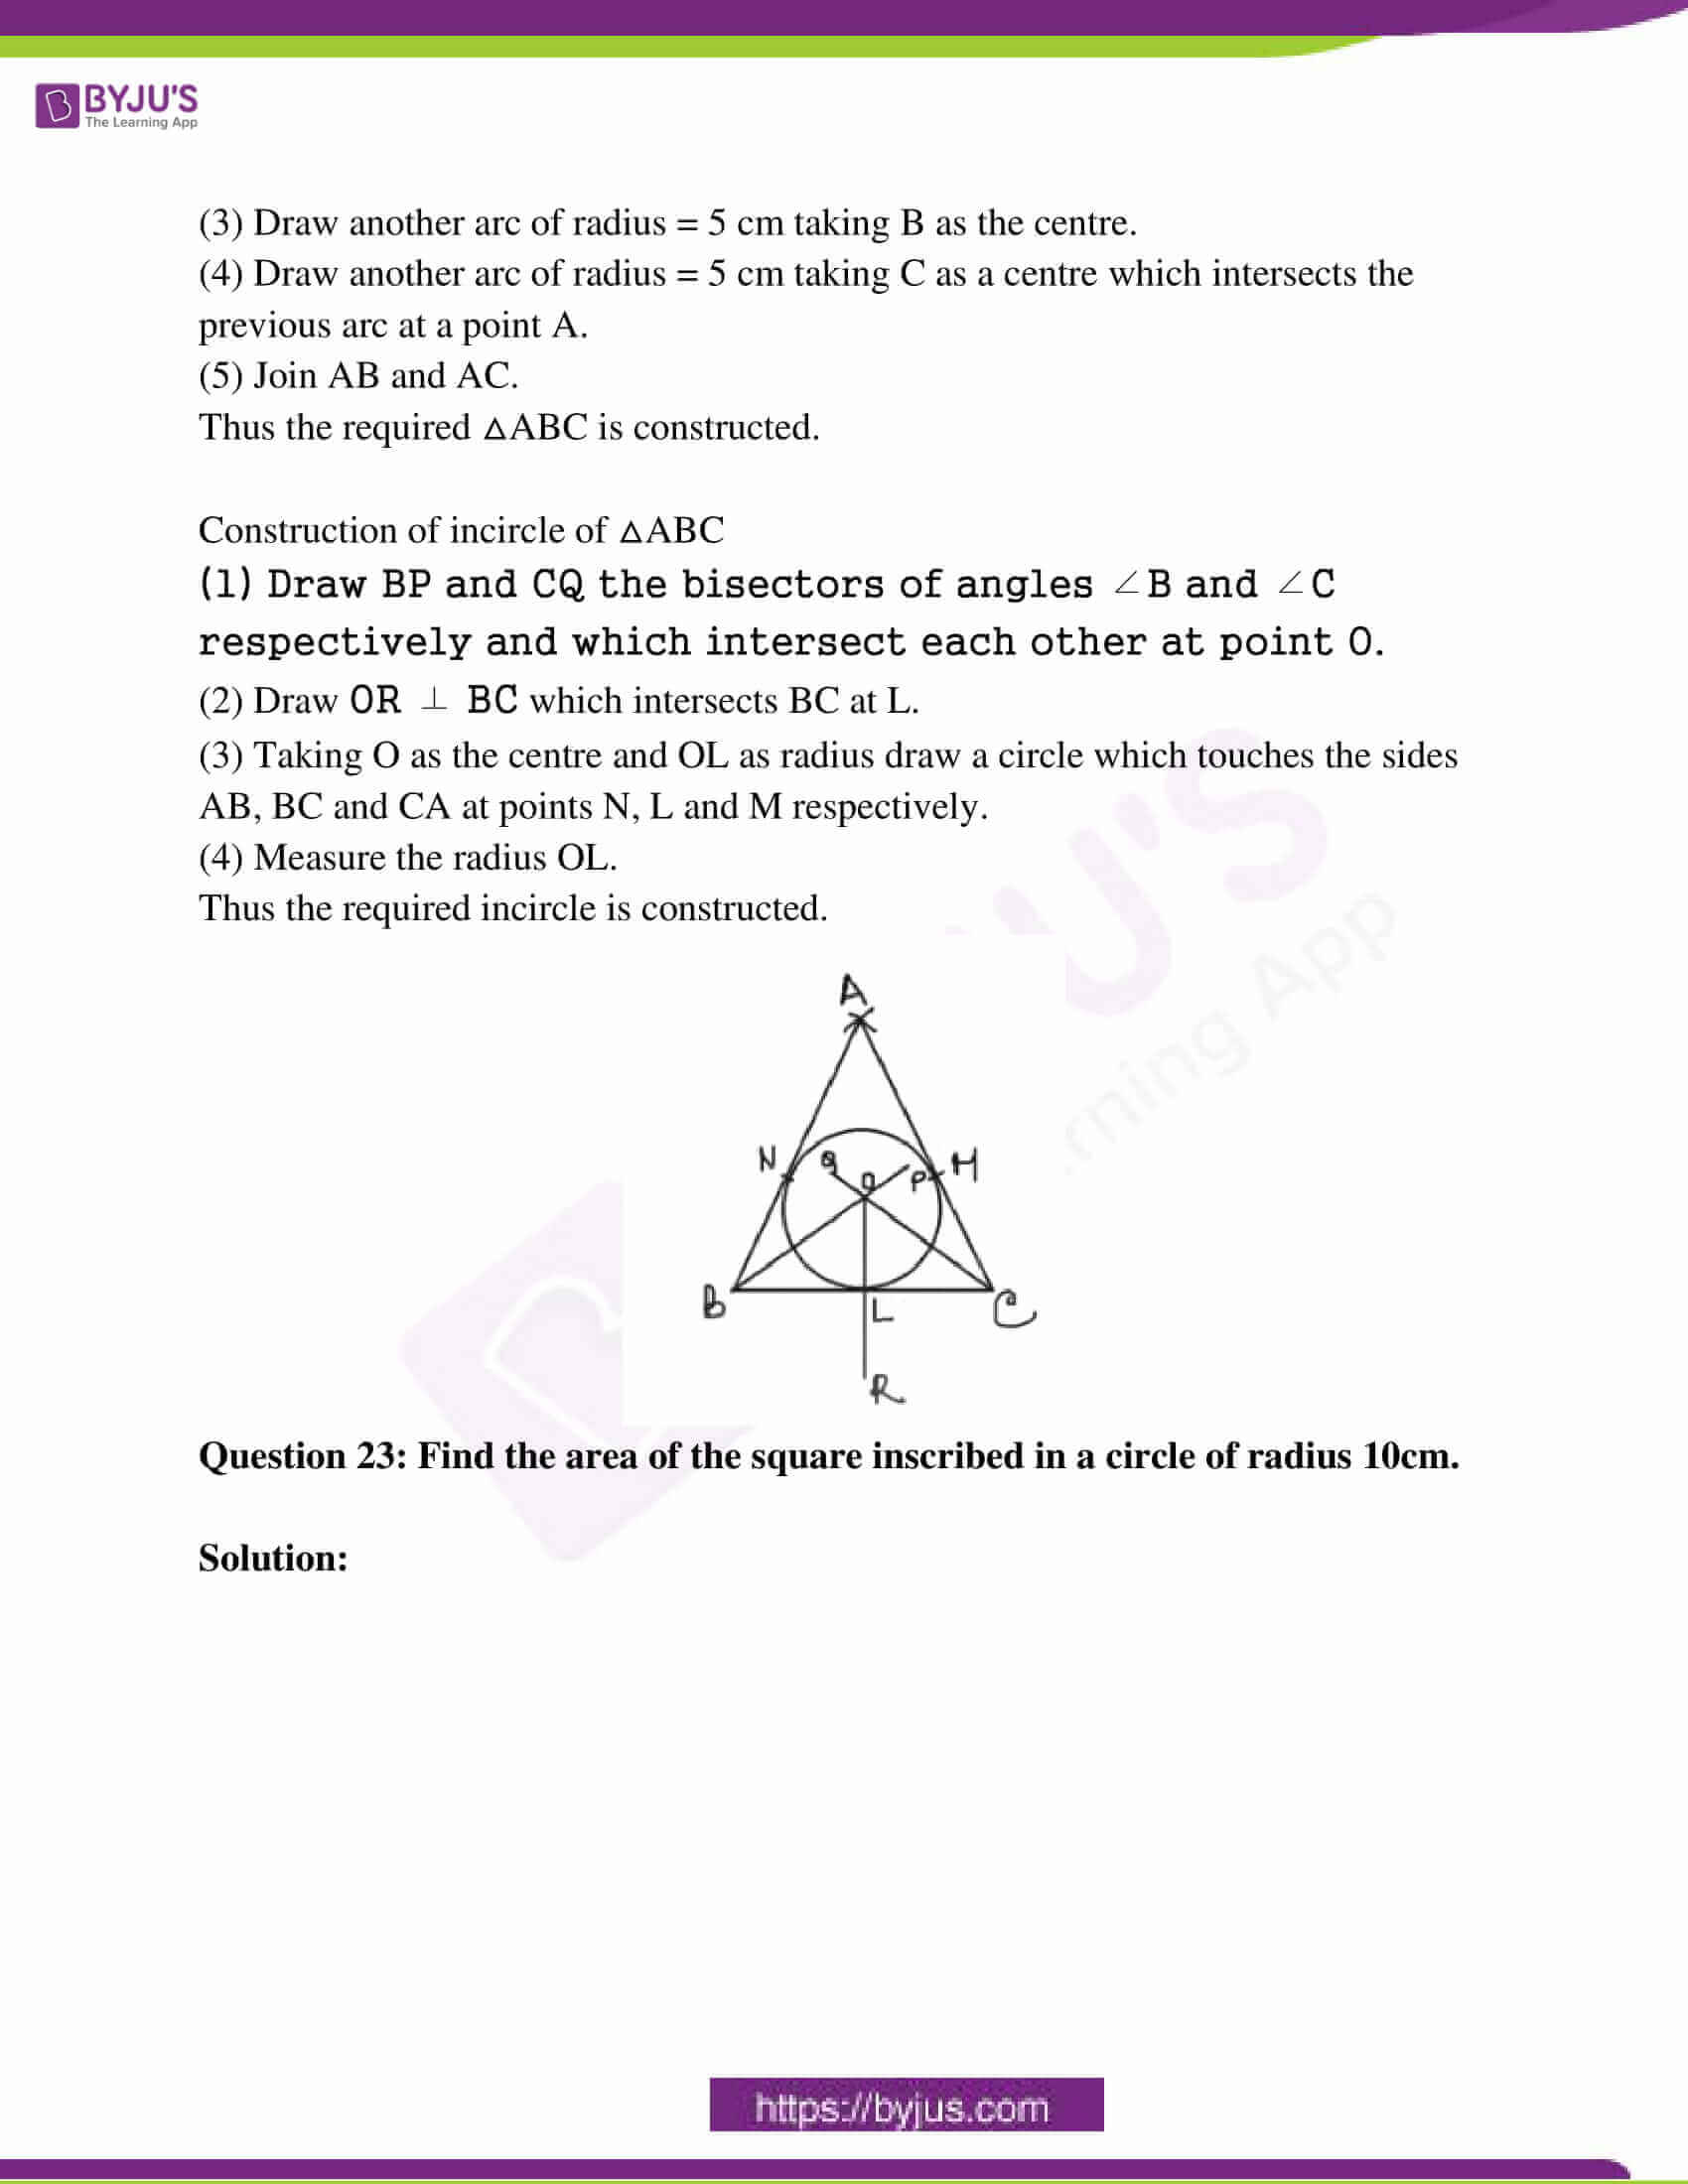 rajasthan board class 10 examination question paper sol march 2019 12